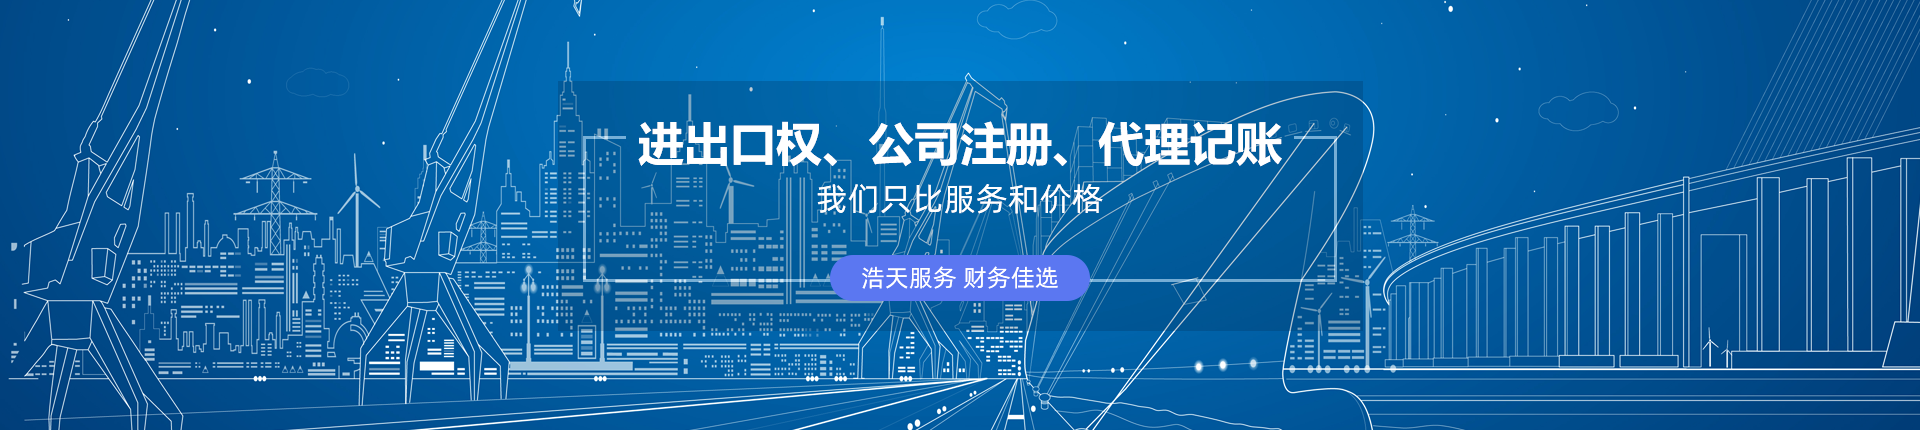 http://www.ht-cw.cn/data/upload/202007/20200721164222_717.png